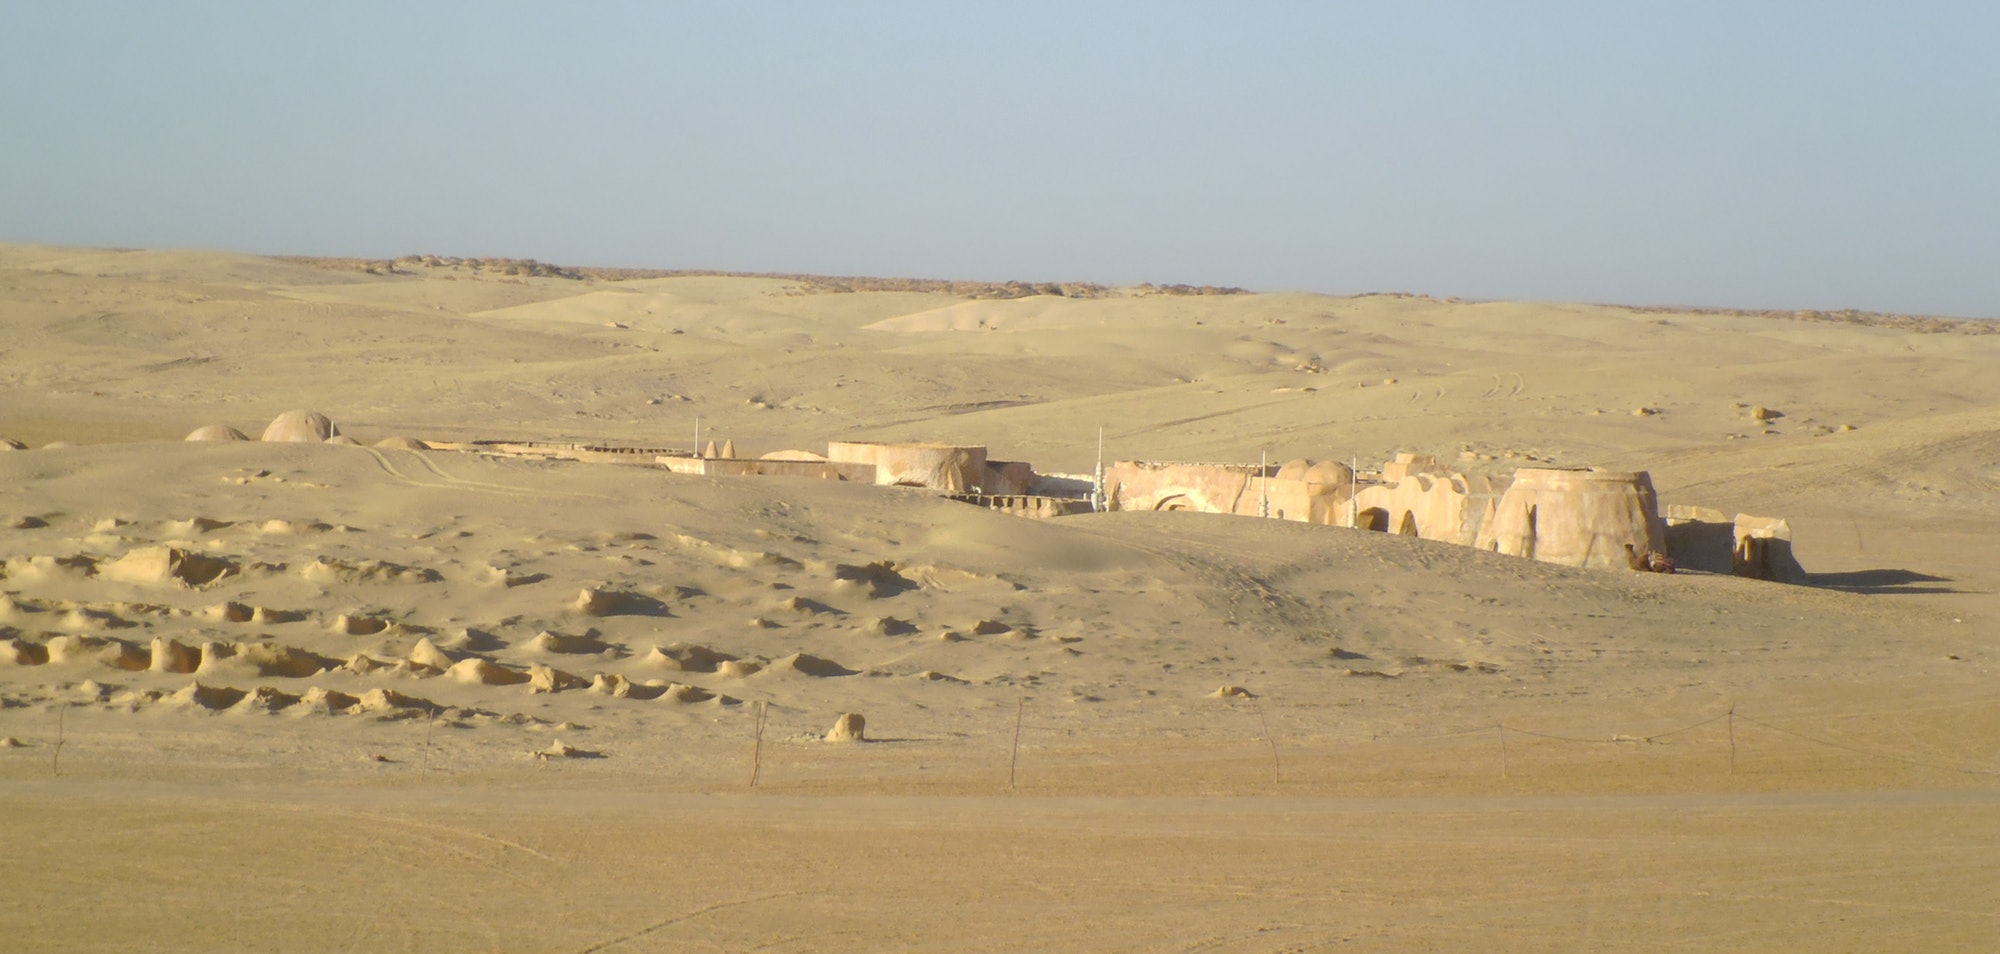 Star Wars Tatooine Tunisia